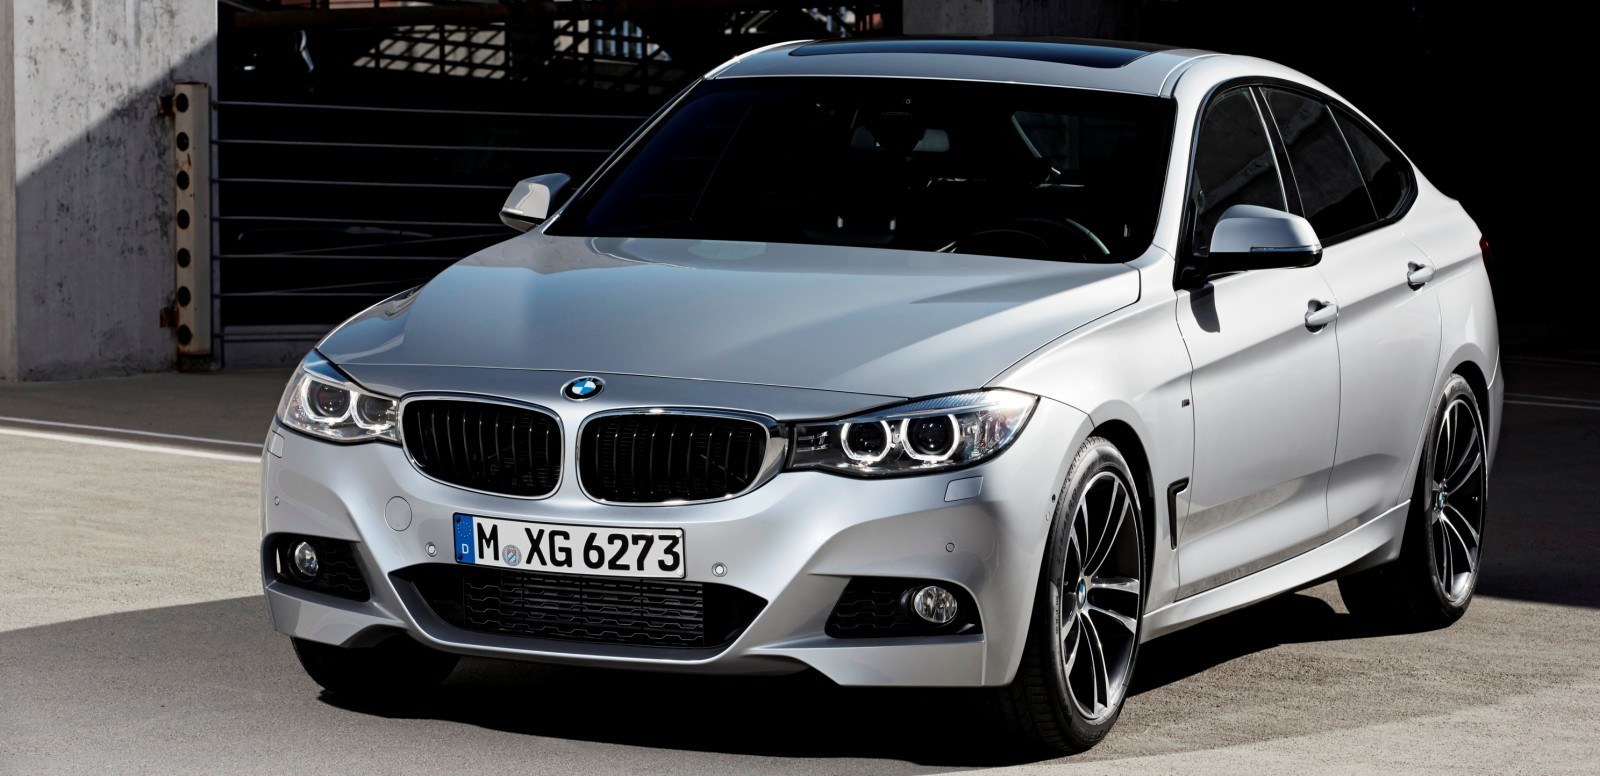 Best of Awards - 1000 miles at 100MPH - 2014 M Sport BMW 335i GT 69